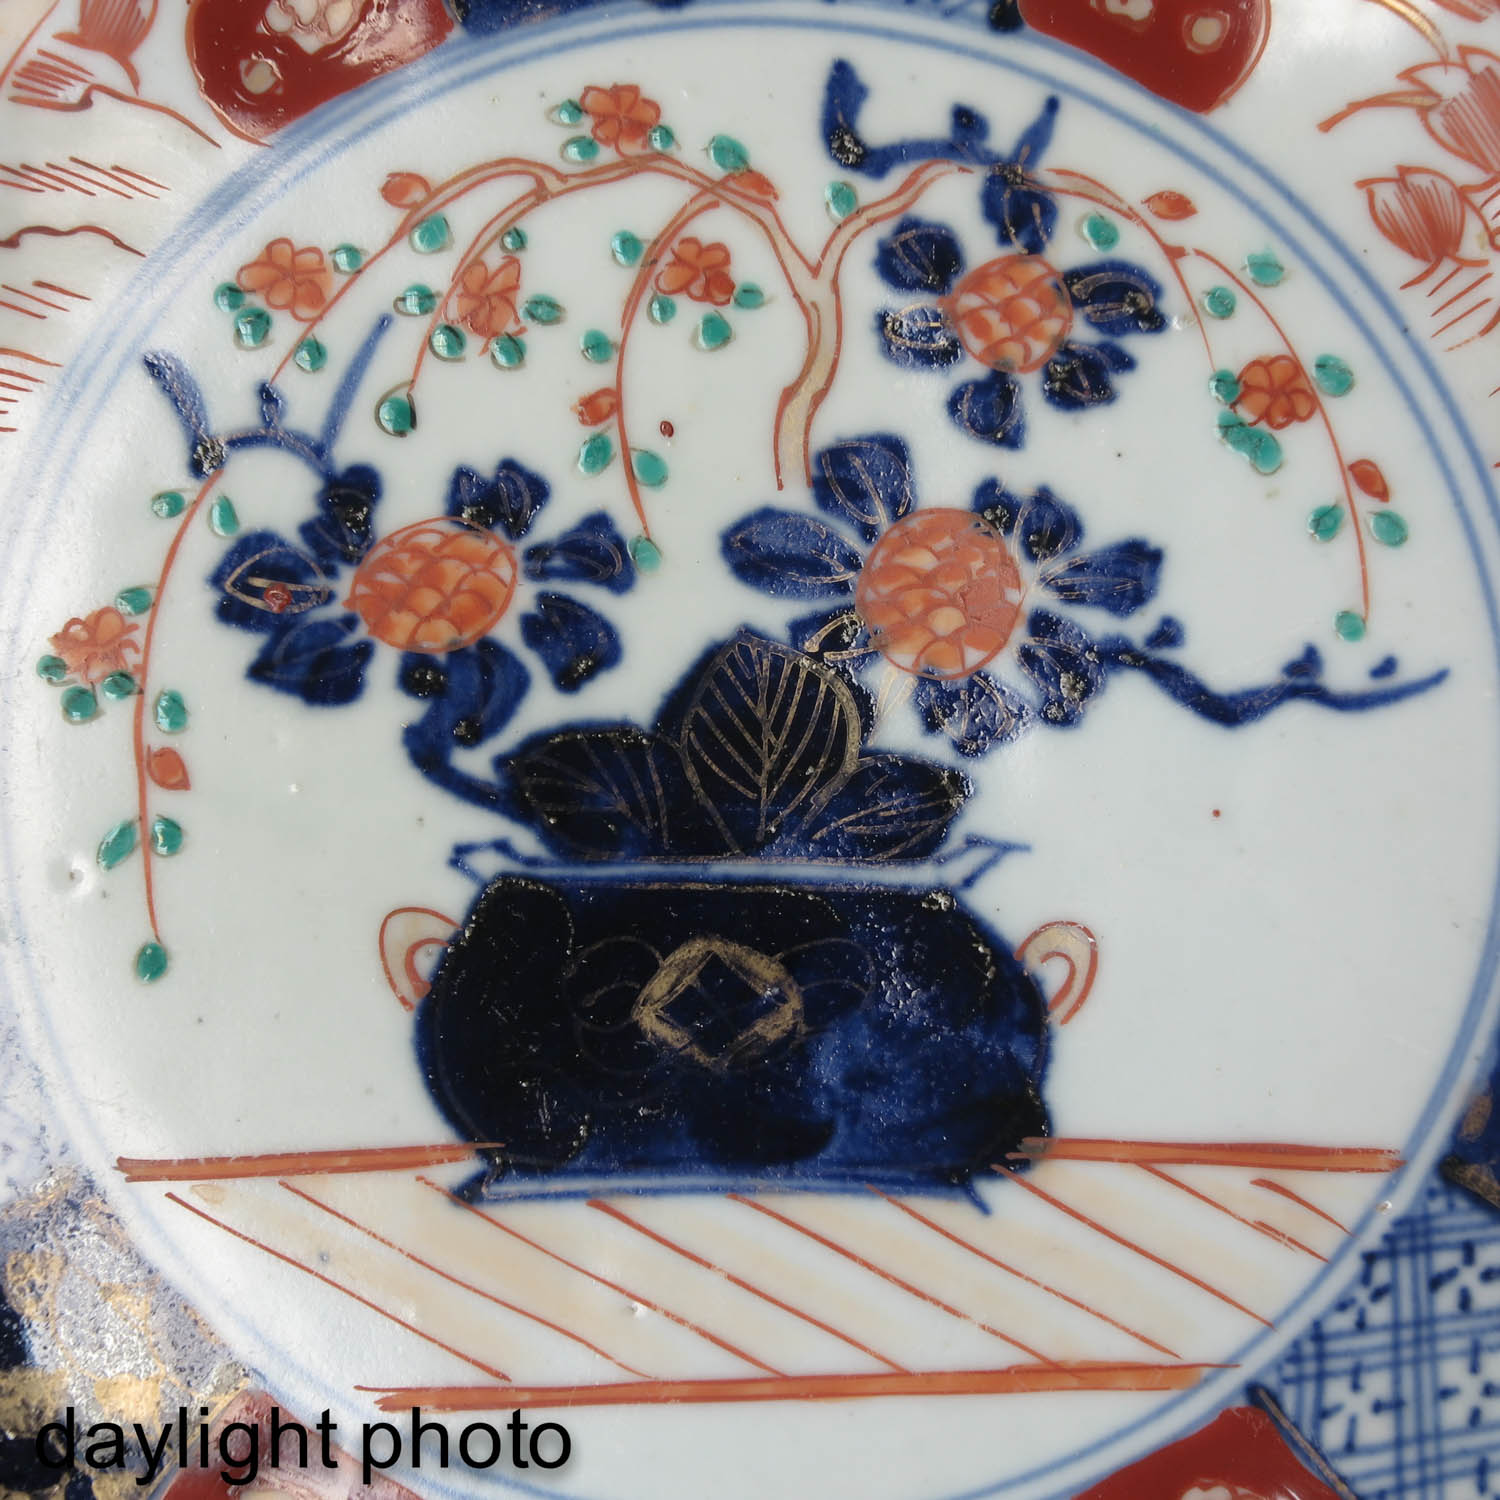 A Collection of 4 Imari Plates - Image 10 of 10